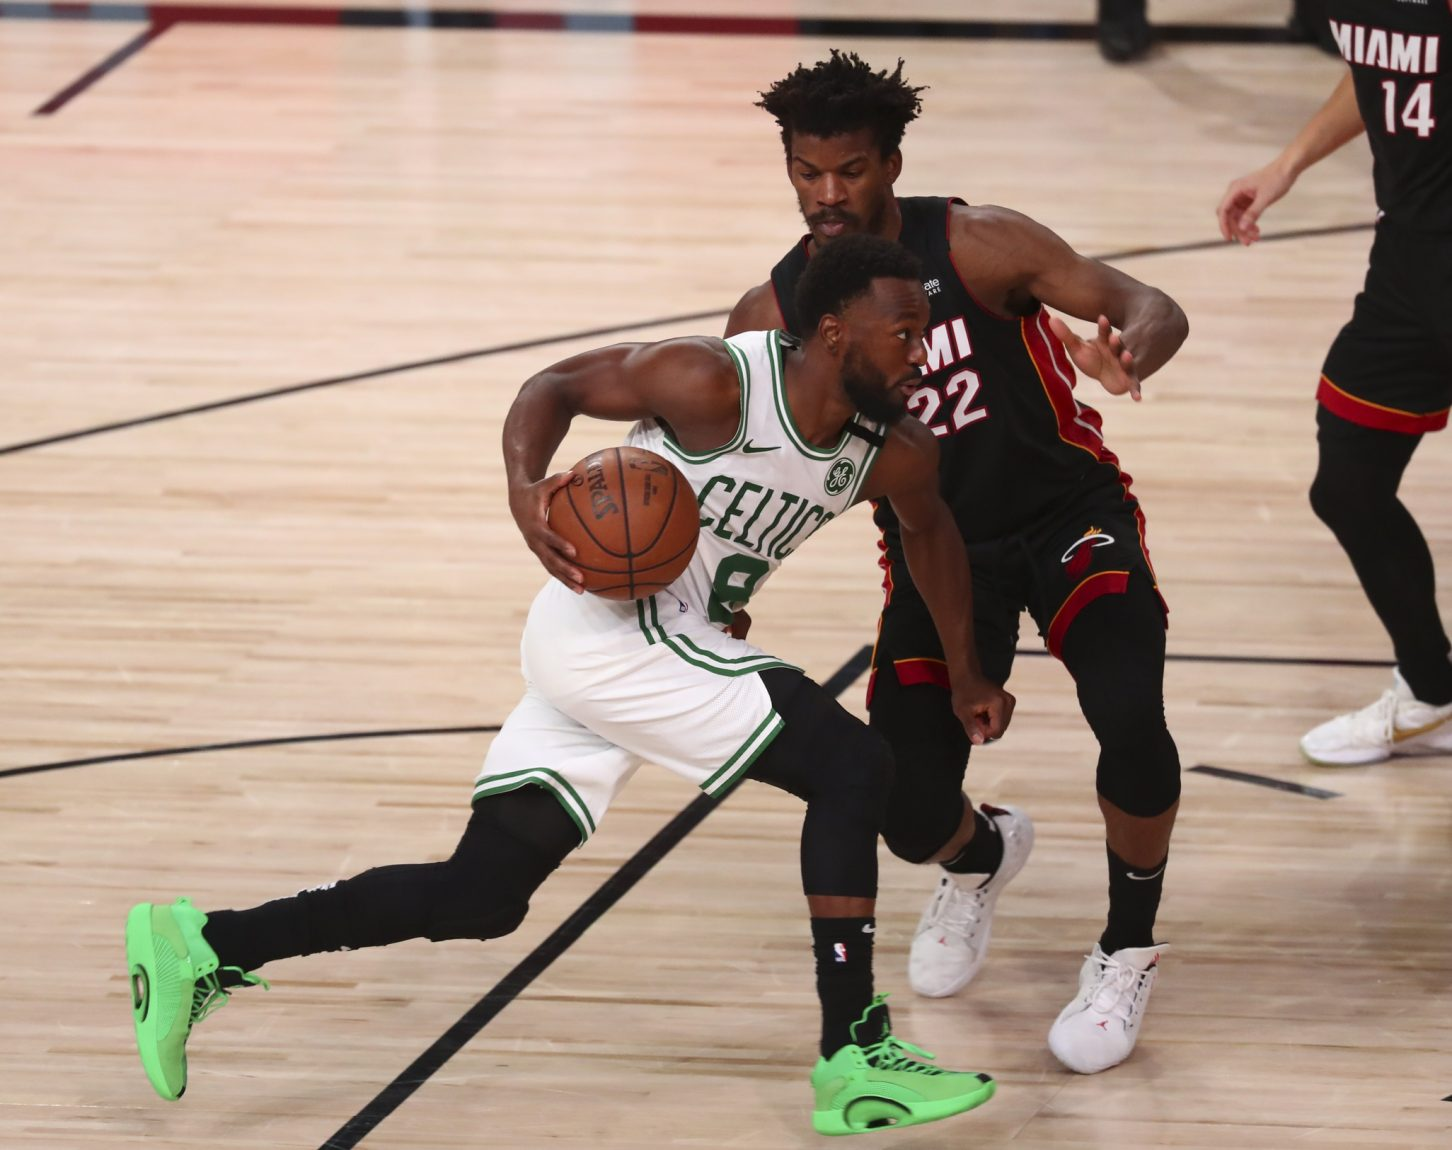 5 rational thoughts about the Celtics' season-ending Game 6 loss